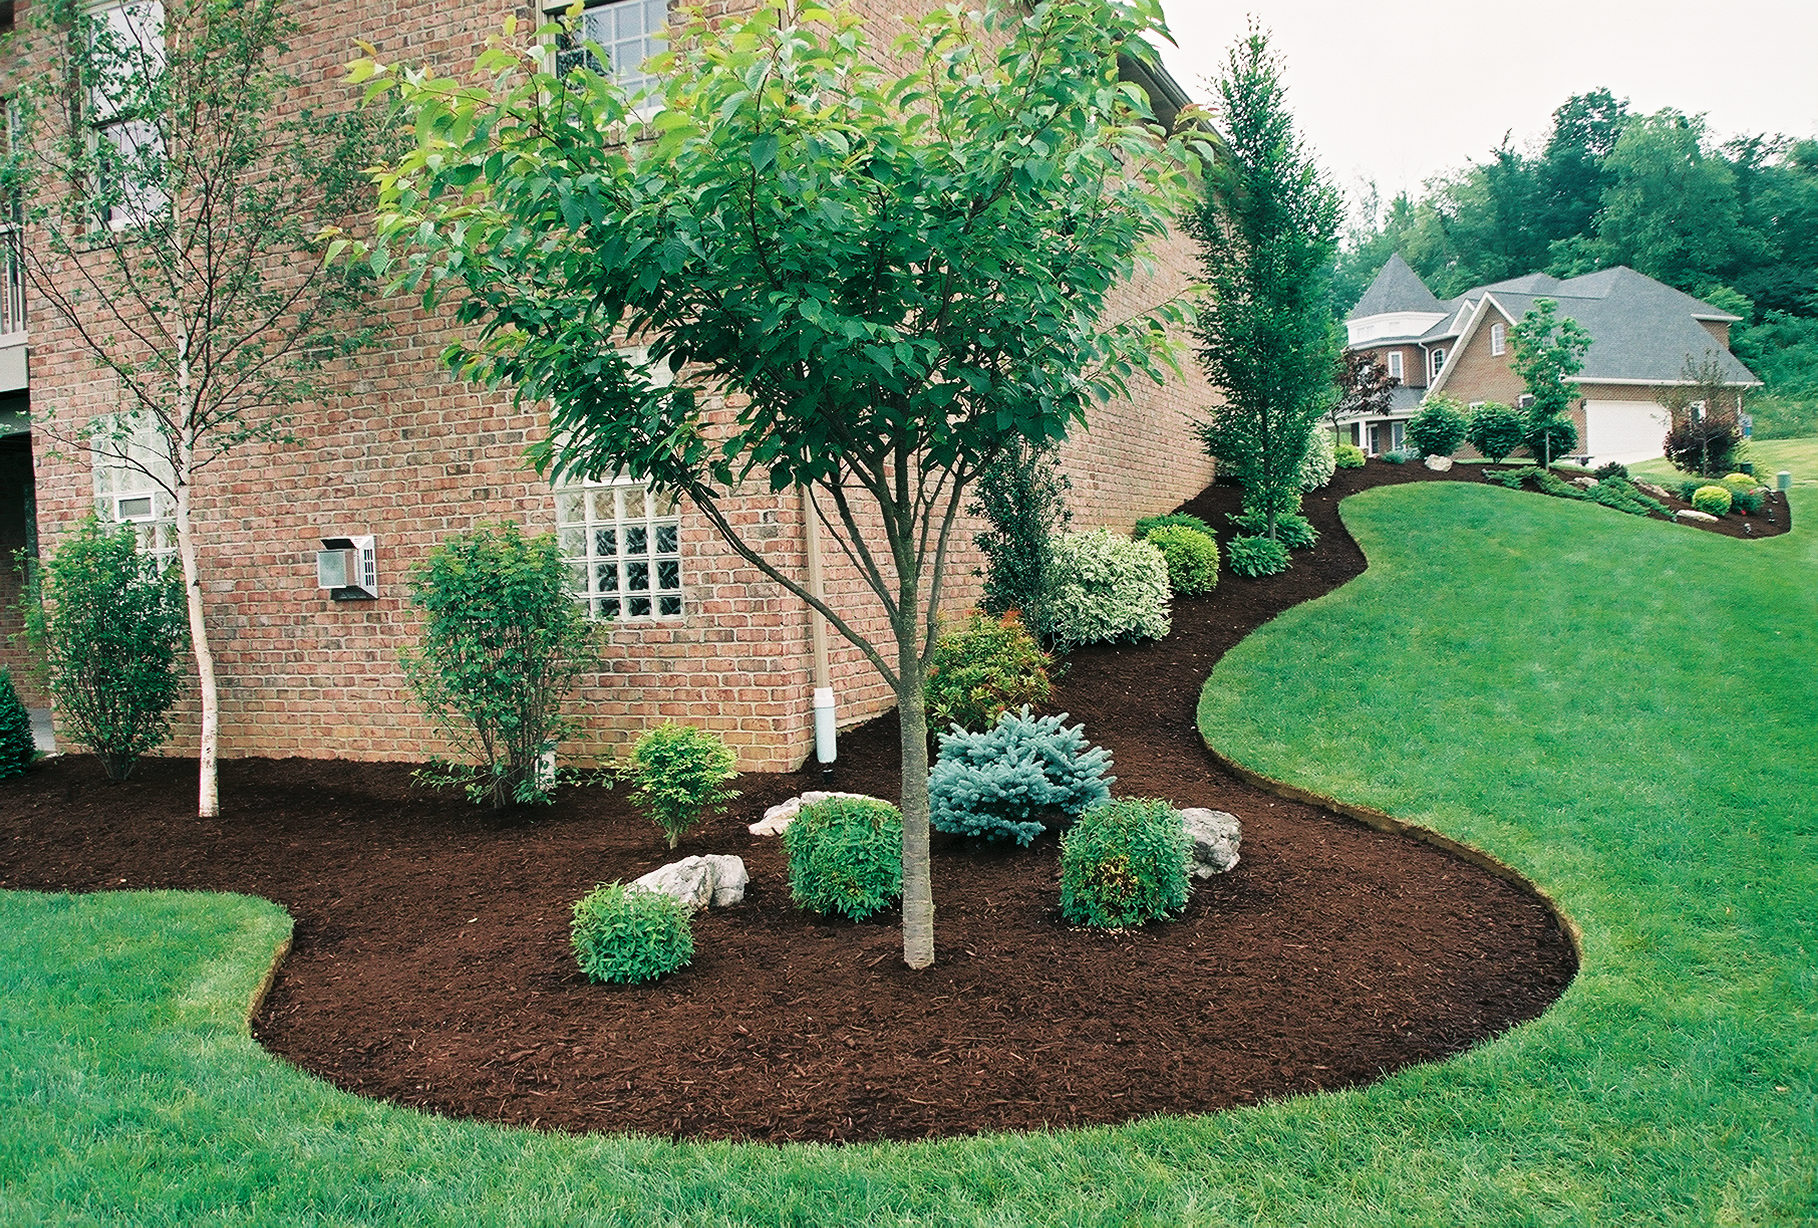 How Great Landscaping Says 'Come Inside!' | JohnnyBrooks on Backyard Landscaping Near Me id=87263